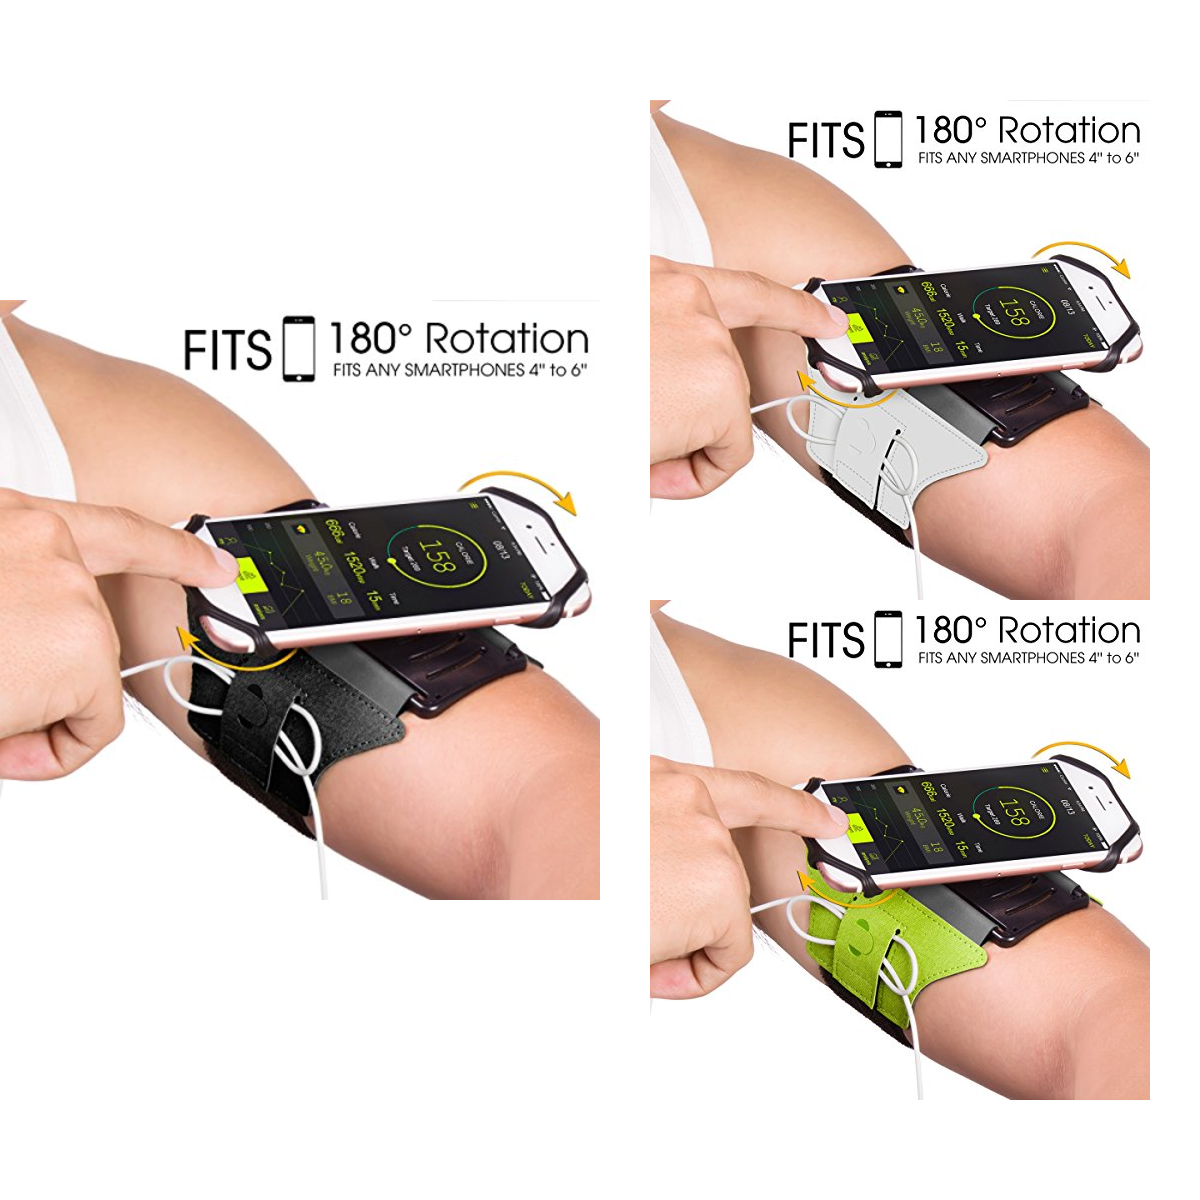 Universal Running Armband for all types of phones 180° Rotatable with Key Holder - Everyday Crosstrain